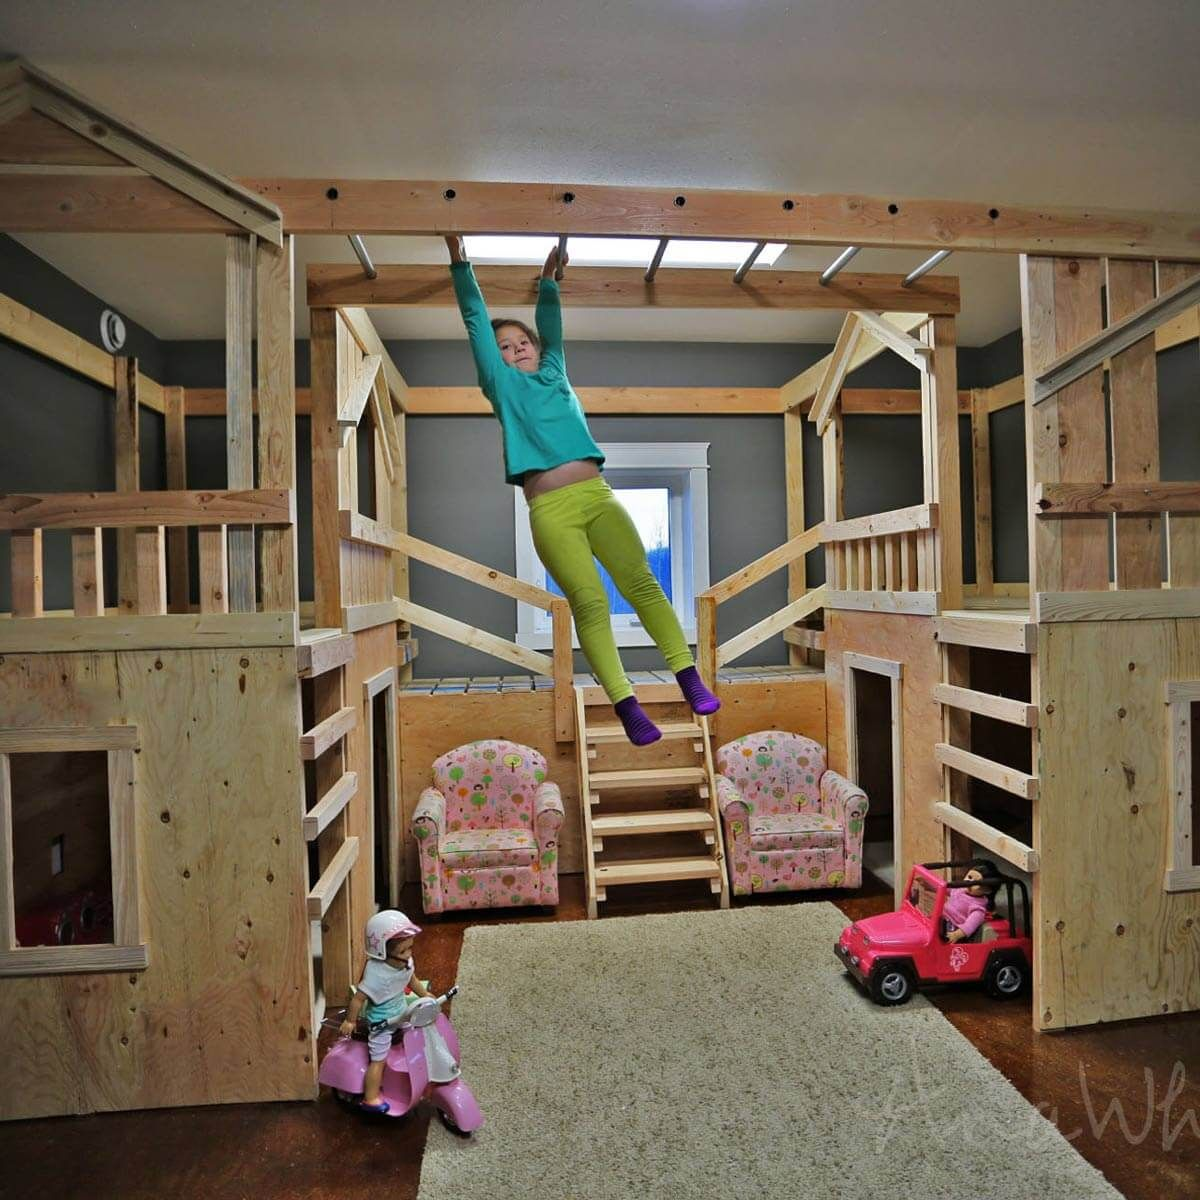 Indoor jungle gym bed year of clean water